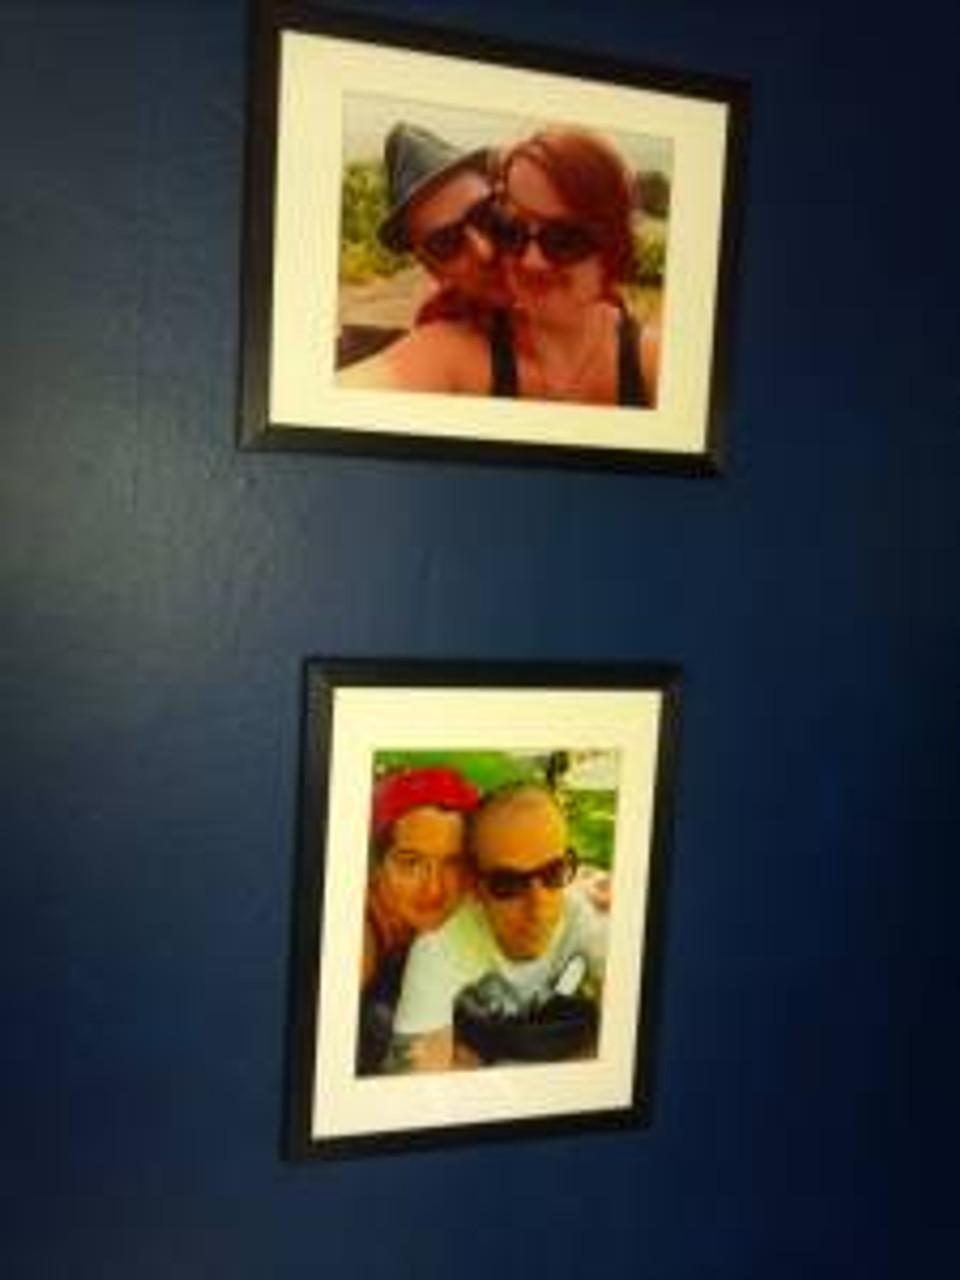 longtime fan of Shutterfly and how fast they are at printing and delivering photos I've uploaded - two of our vacation photos already proudly framed and displayed :)